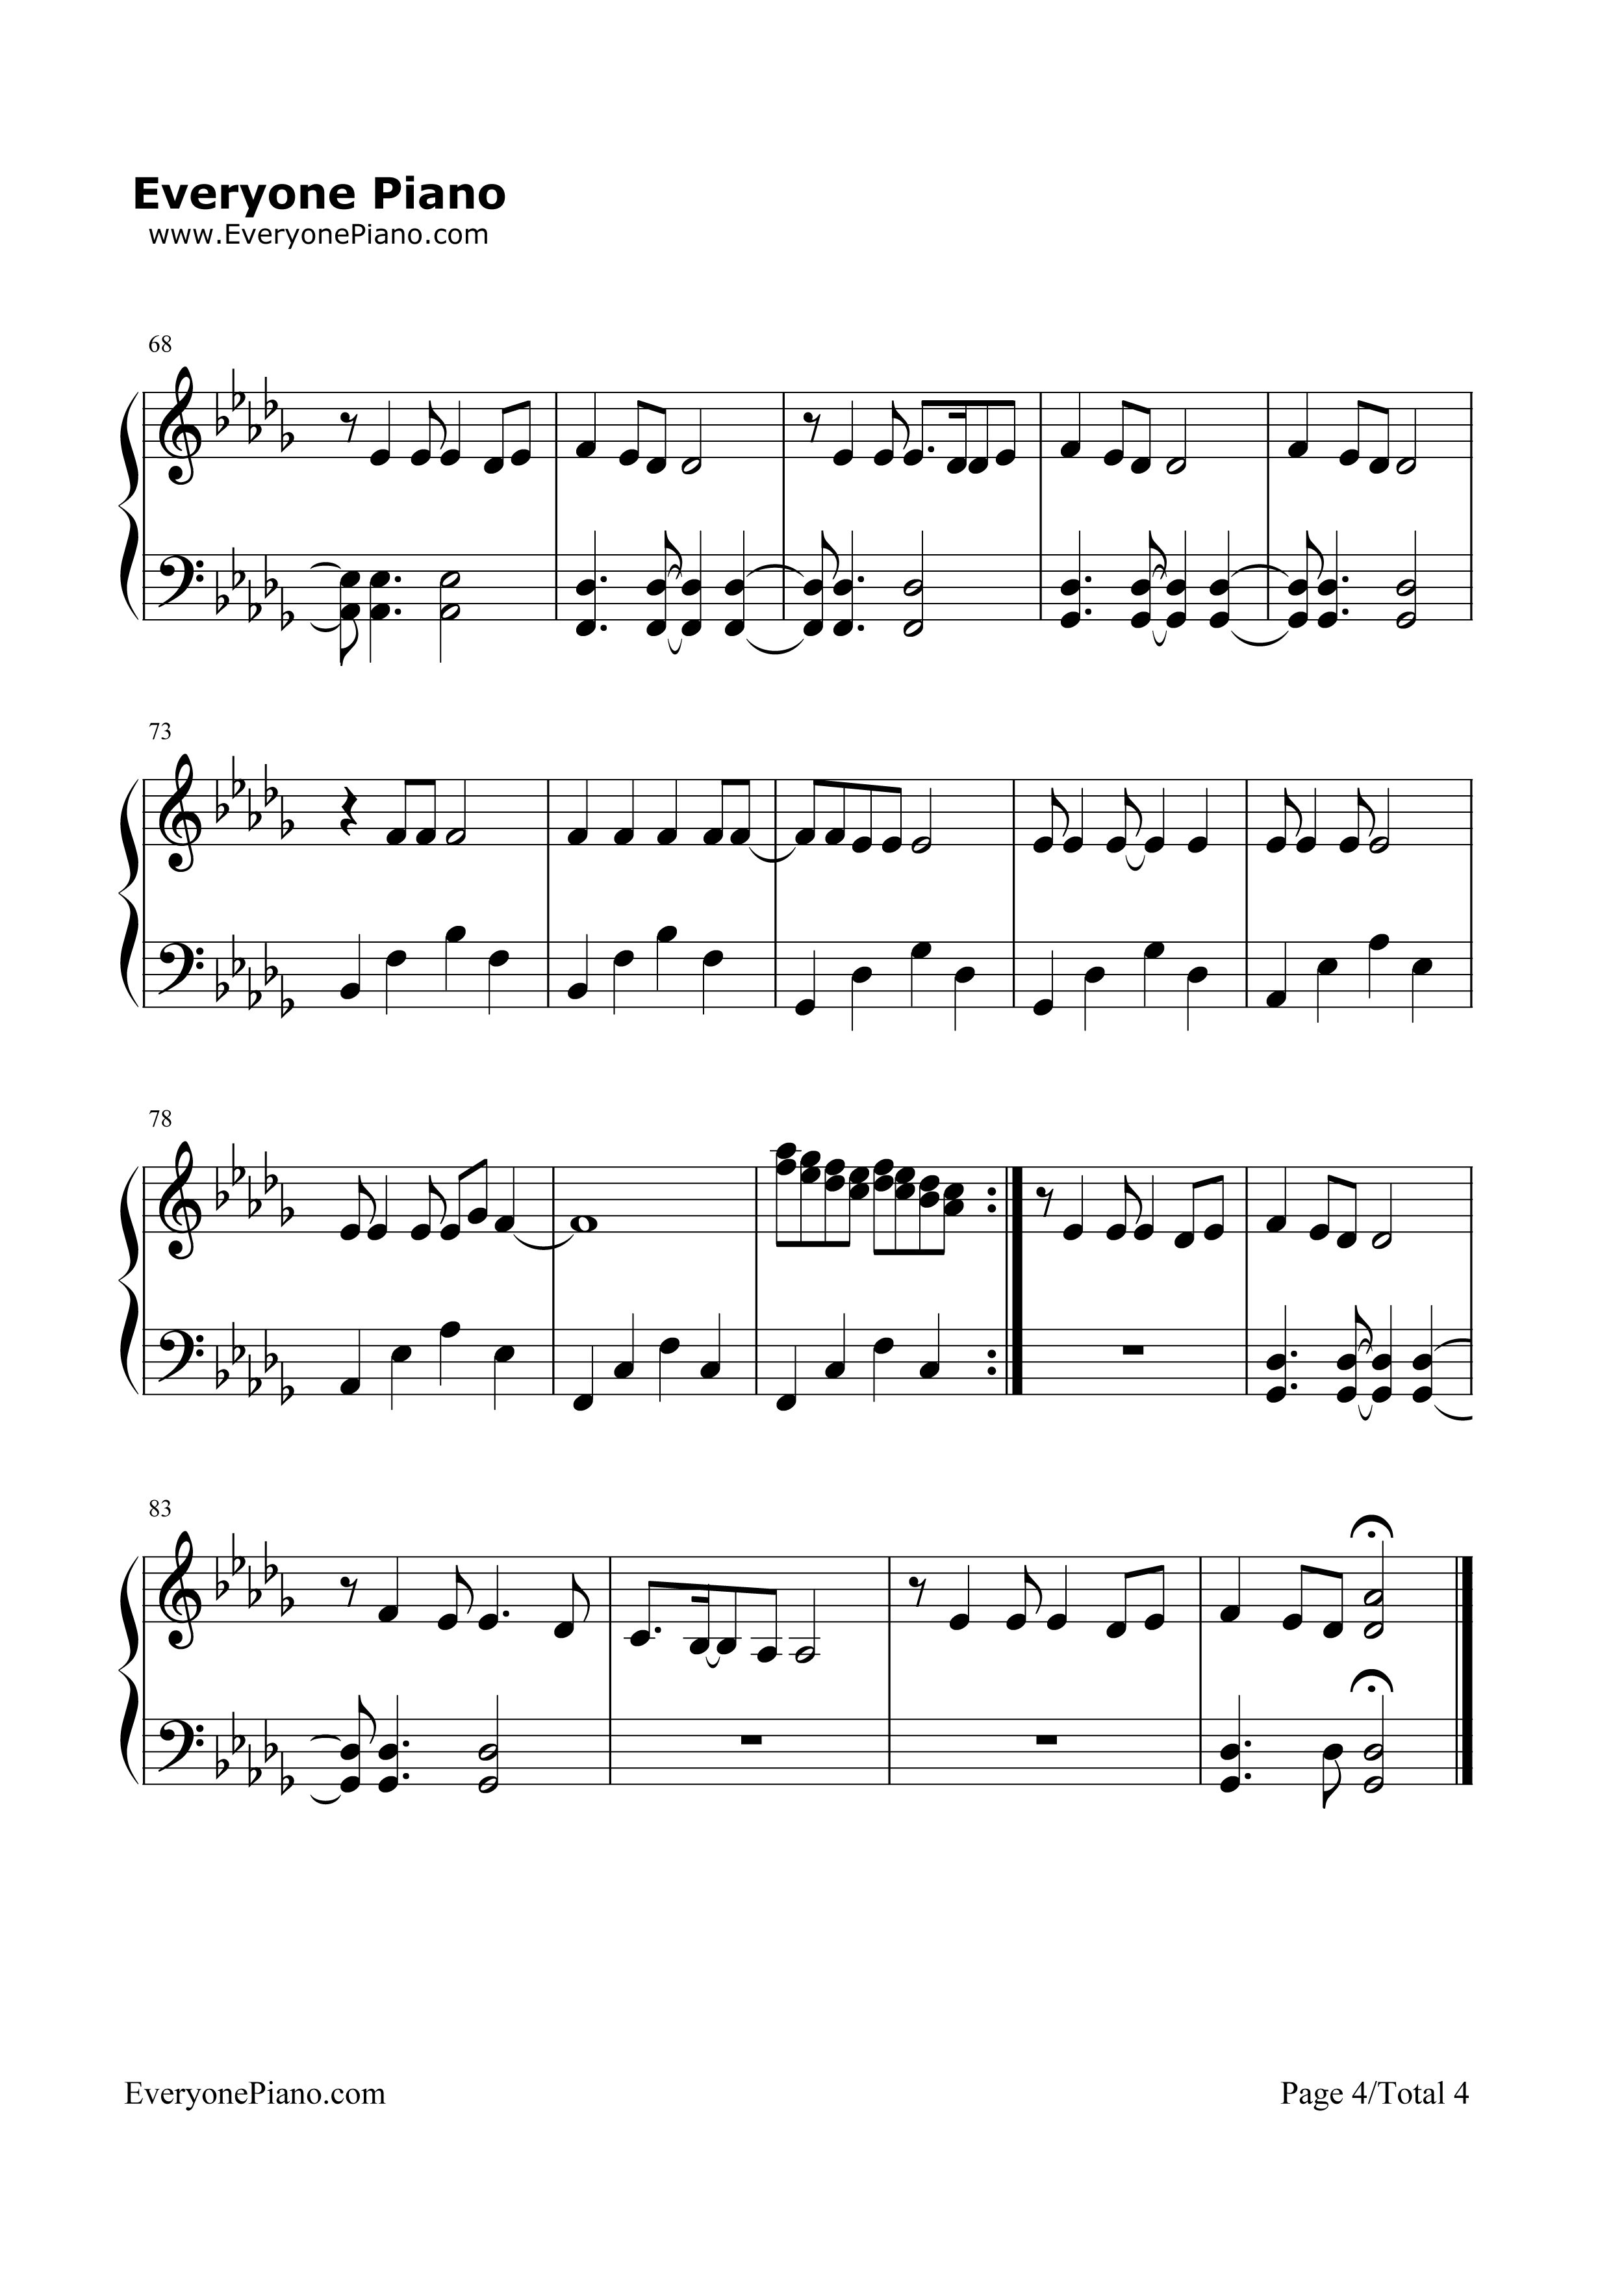 Chandelier-Sia Stave Preview 4-Free Piano Sheet Music u0026 Piano Chords